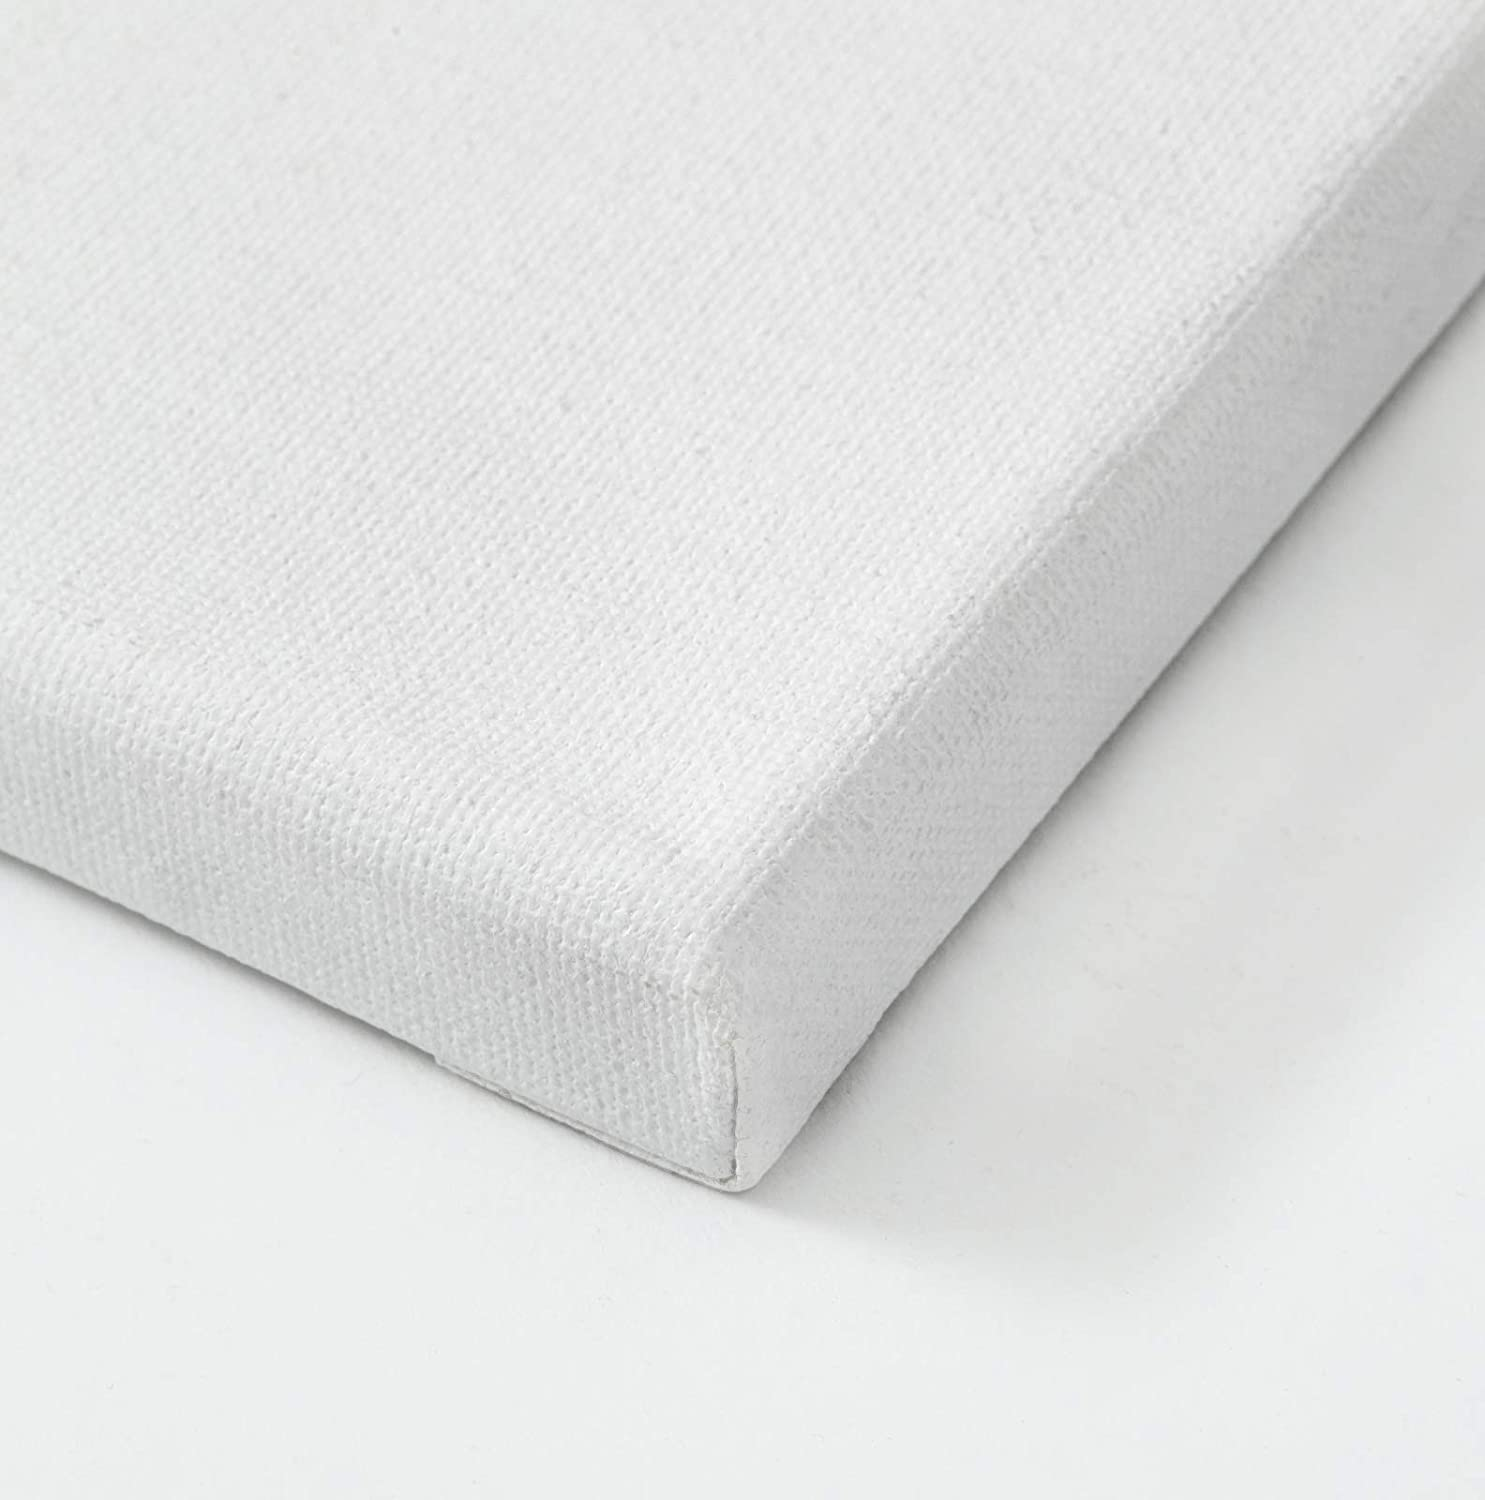 miniature 22 - Americanflat Stretched Canvas in White 100% Cotton Wooden Frames & Acid Free